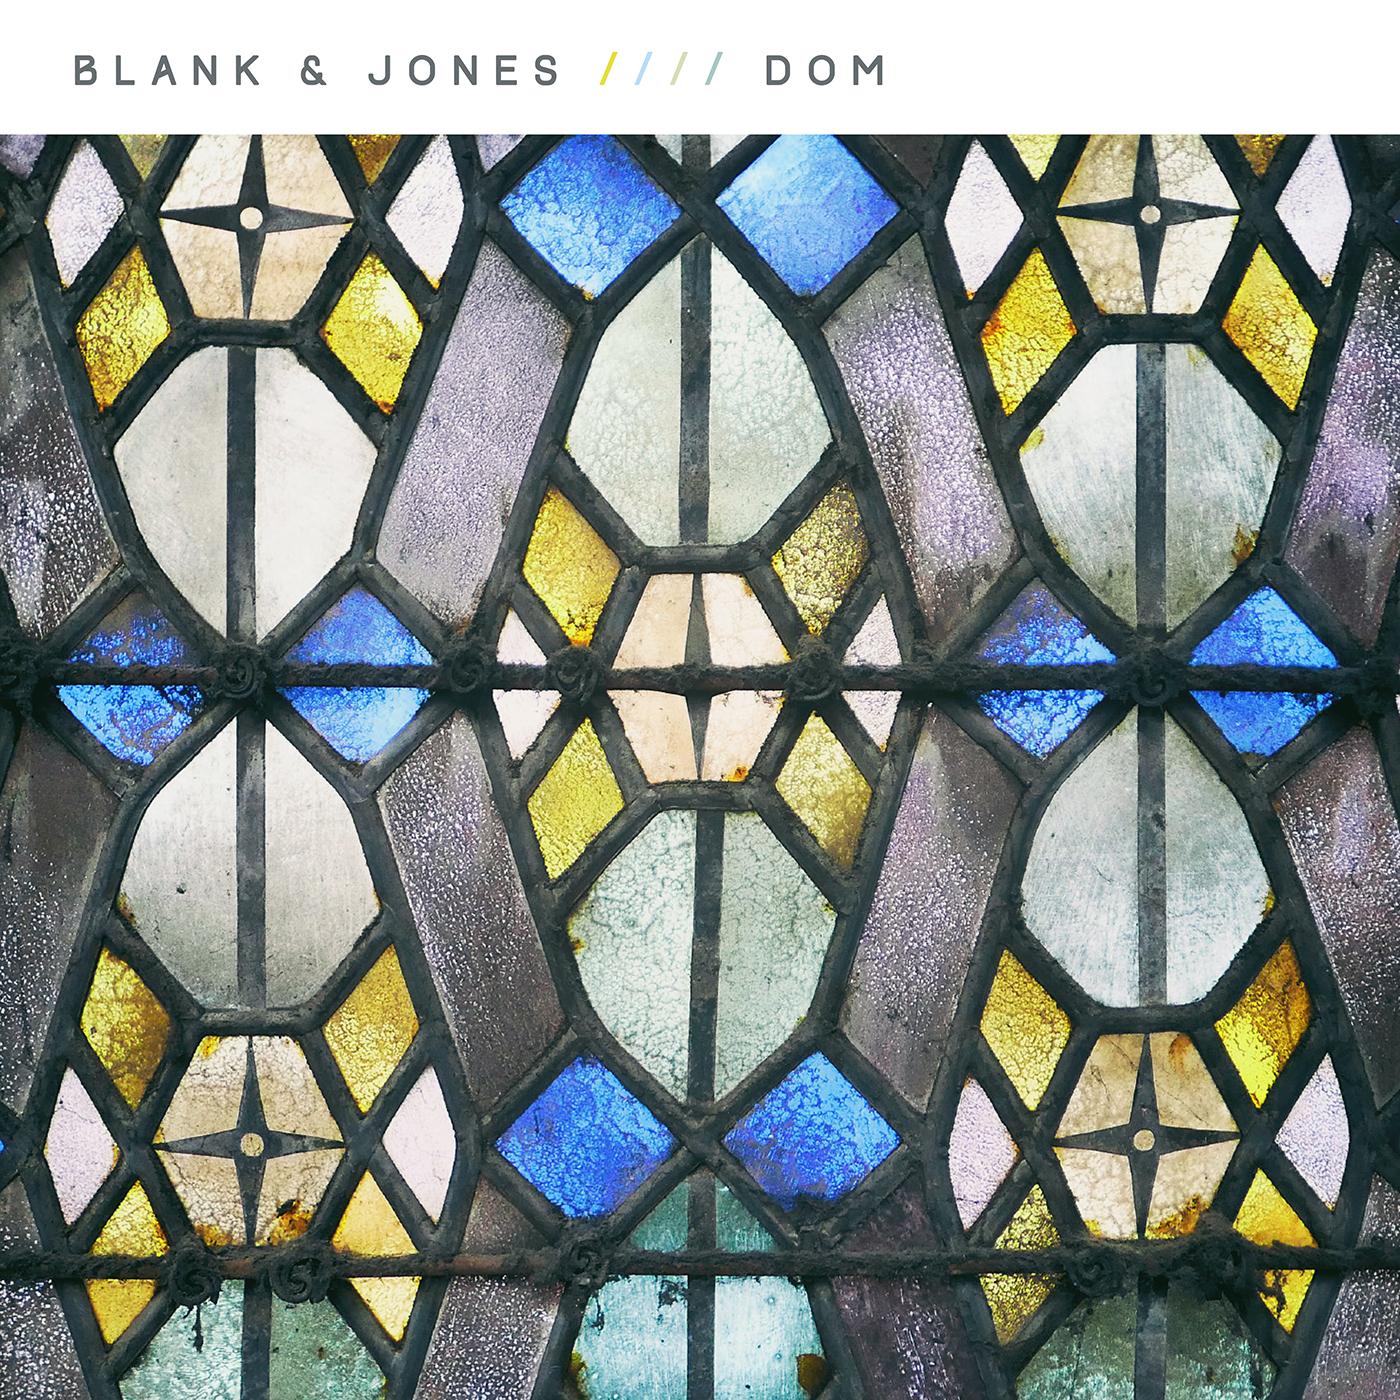 Blank & Jones entern den Kölner Dom